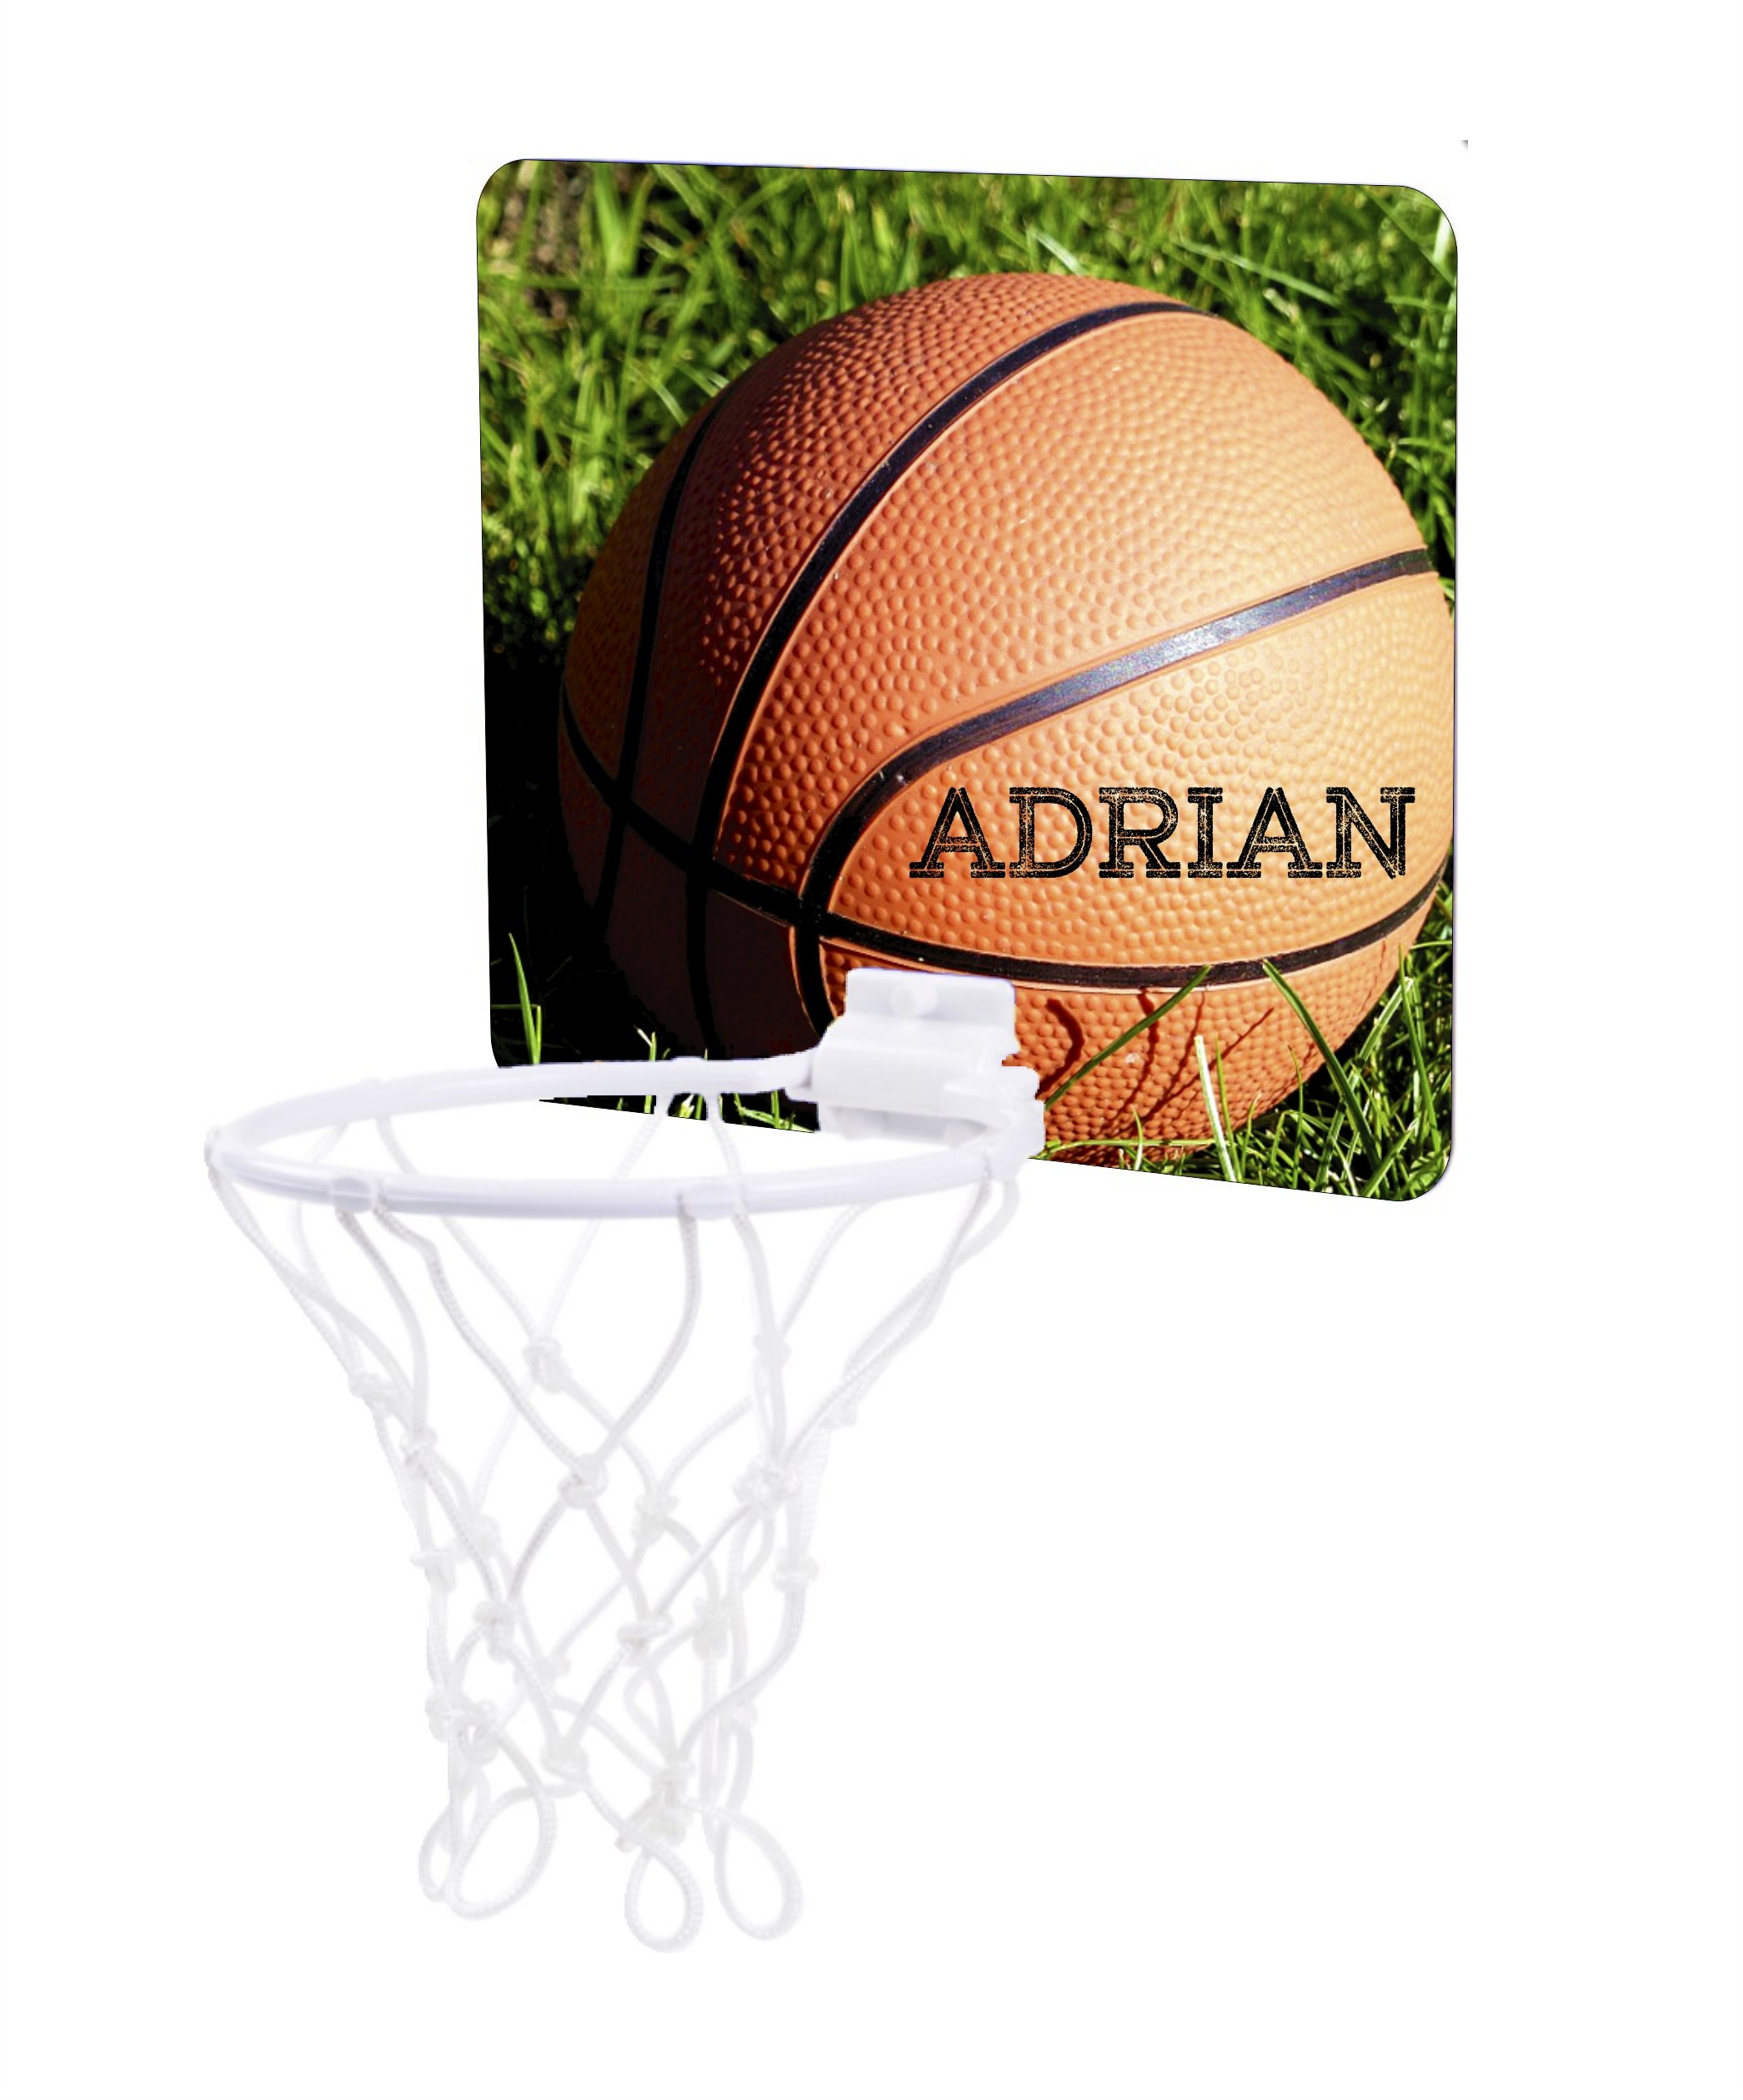 Jacks Outlet Basketball in the Grass - Custom Unisex Childrens 7.5'' x 9'' Mini Basketball Backboard - Goal with 6'' Hoop by Jacks Outlet (Image #1)